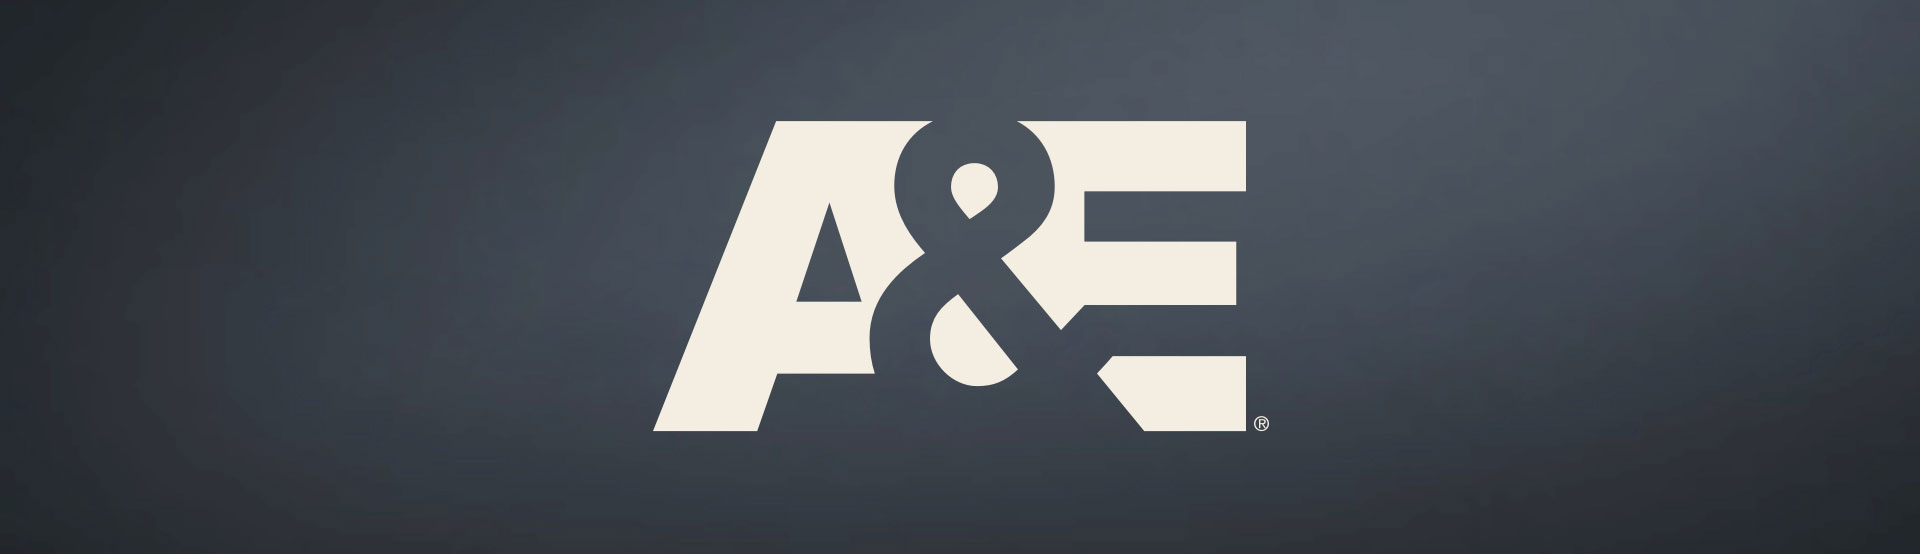 Image for A & E Television Network